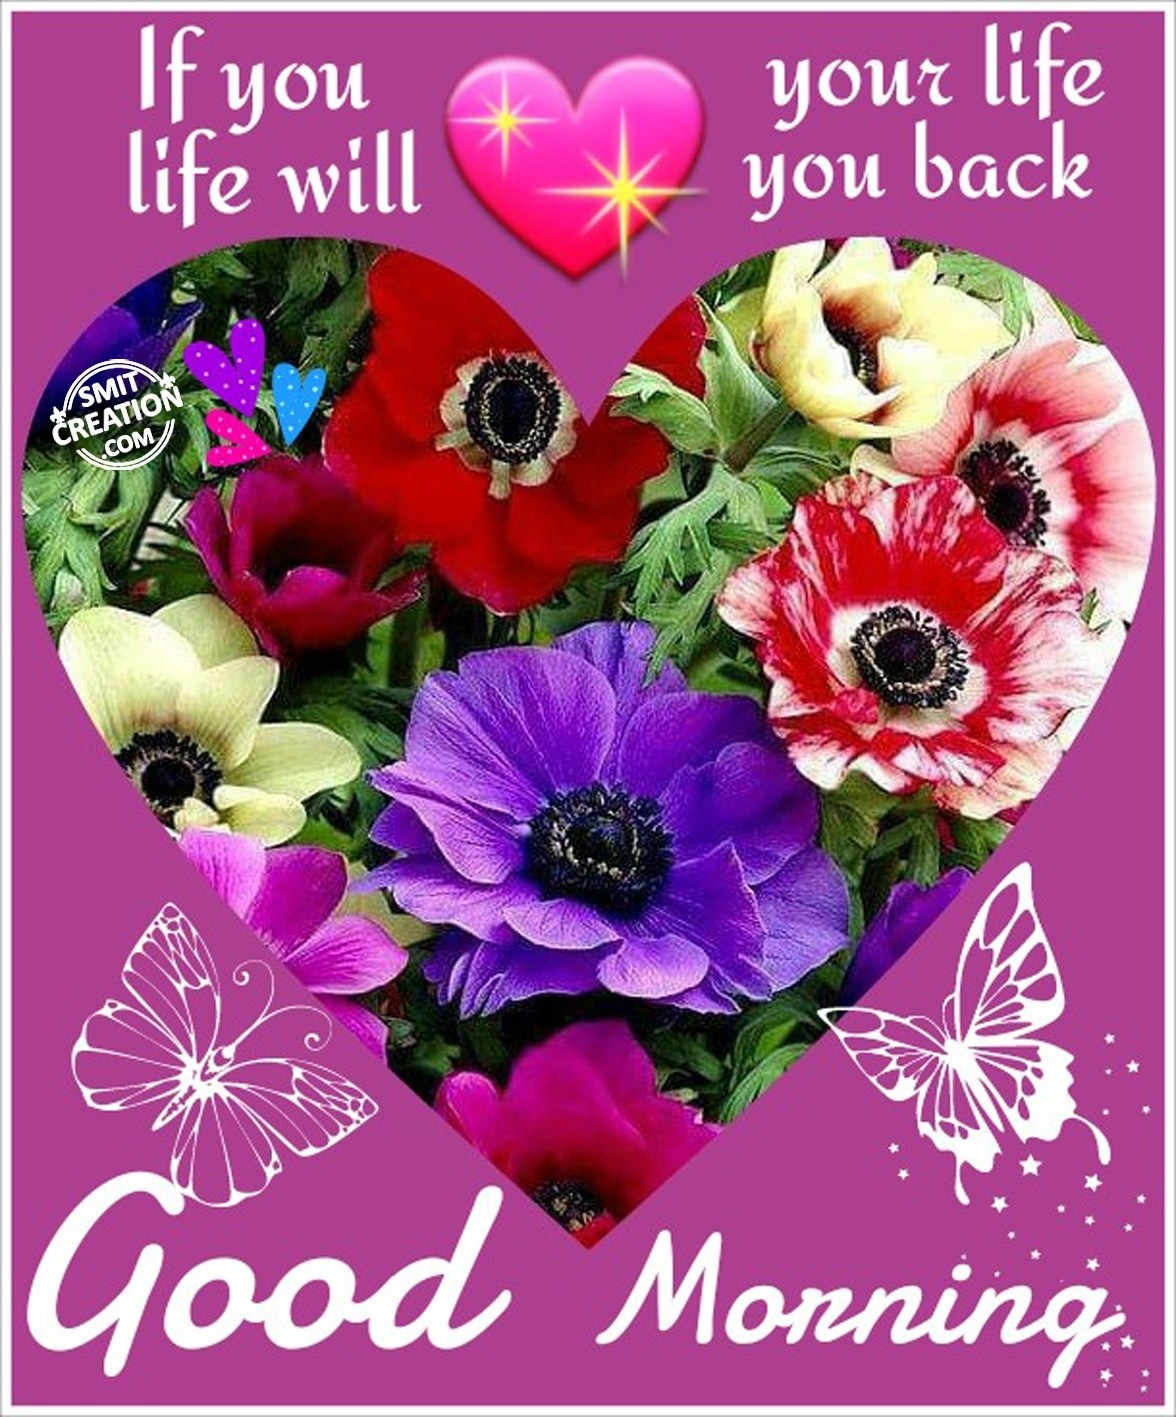 Good Morning Life Pictures And Graphics Smitcreationcom Page 10